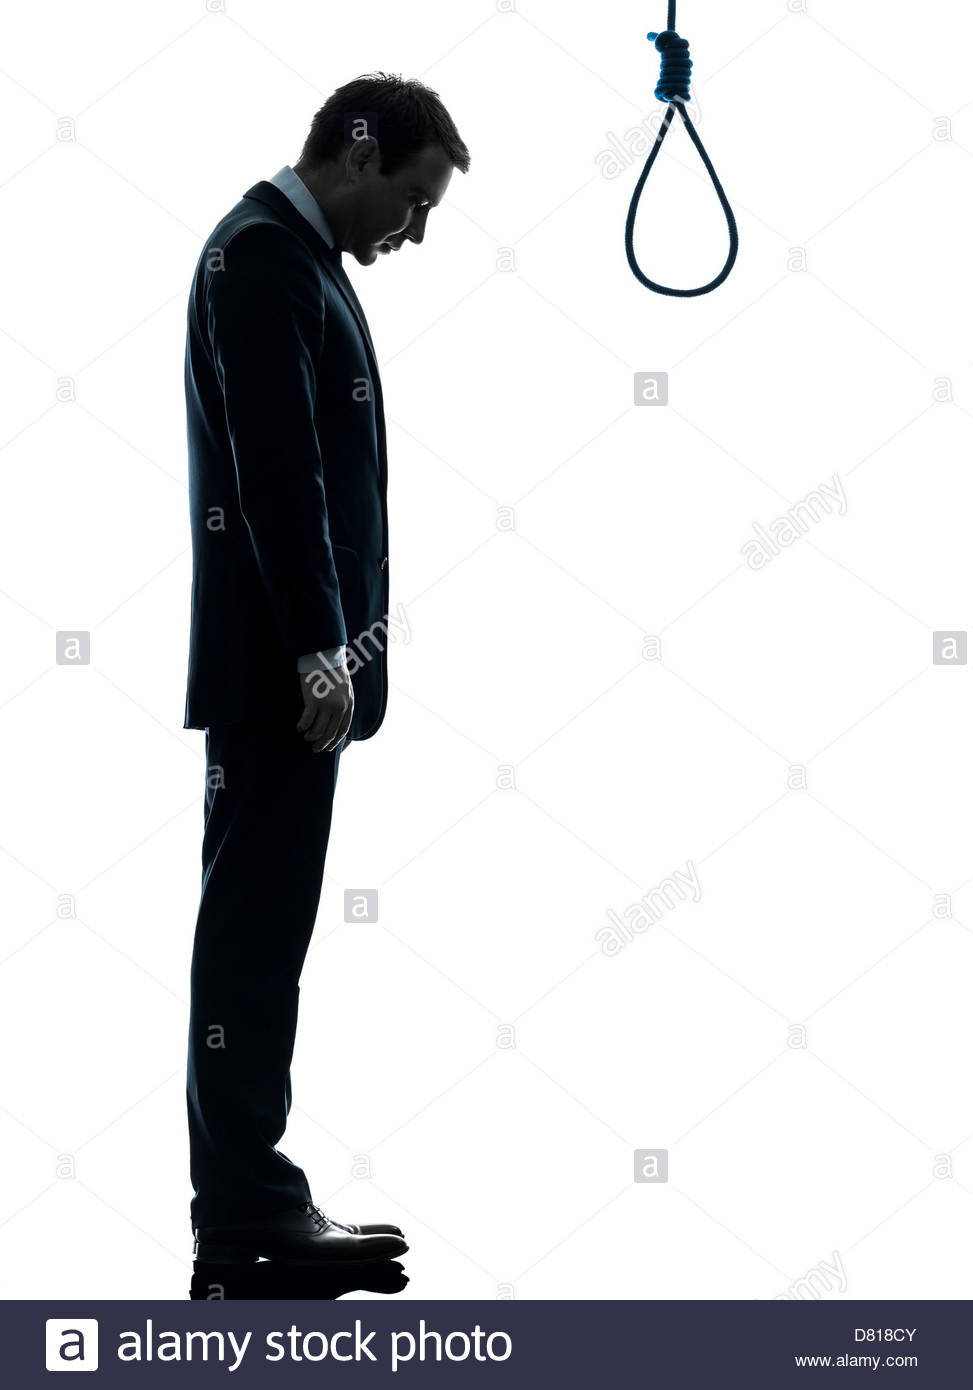 973x1390 One Man Standing In Front Of Hangman's Noose In Silhouette Studio